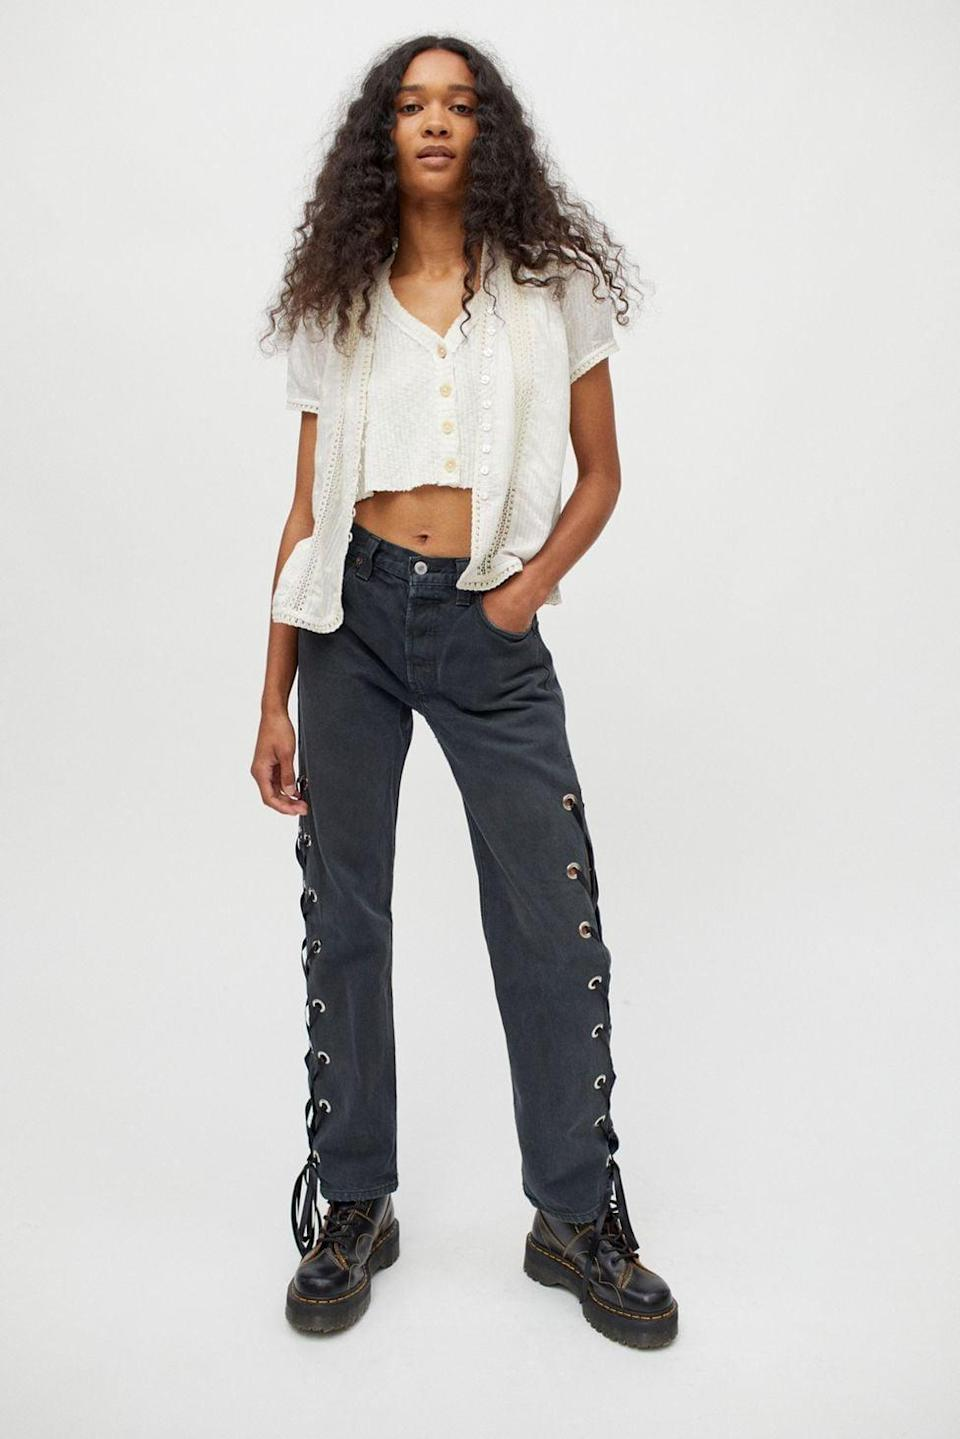 <p>Urban Outfitters's in-house reworked program Urban Renewal churns out pants that are one-of-a-kind, like these <span>Recycled Levi's Side Lace-Up Jeans</span> ($119), which are a solid addition to your wardrobe for evenings out.</p>